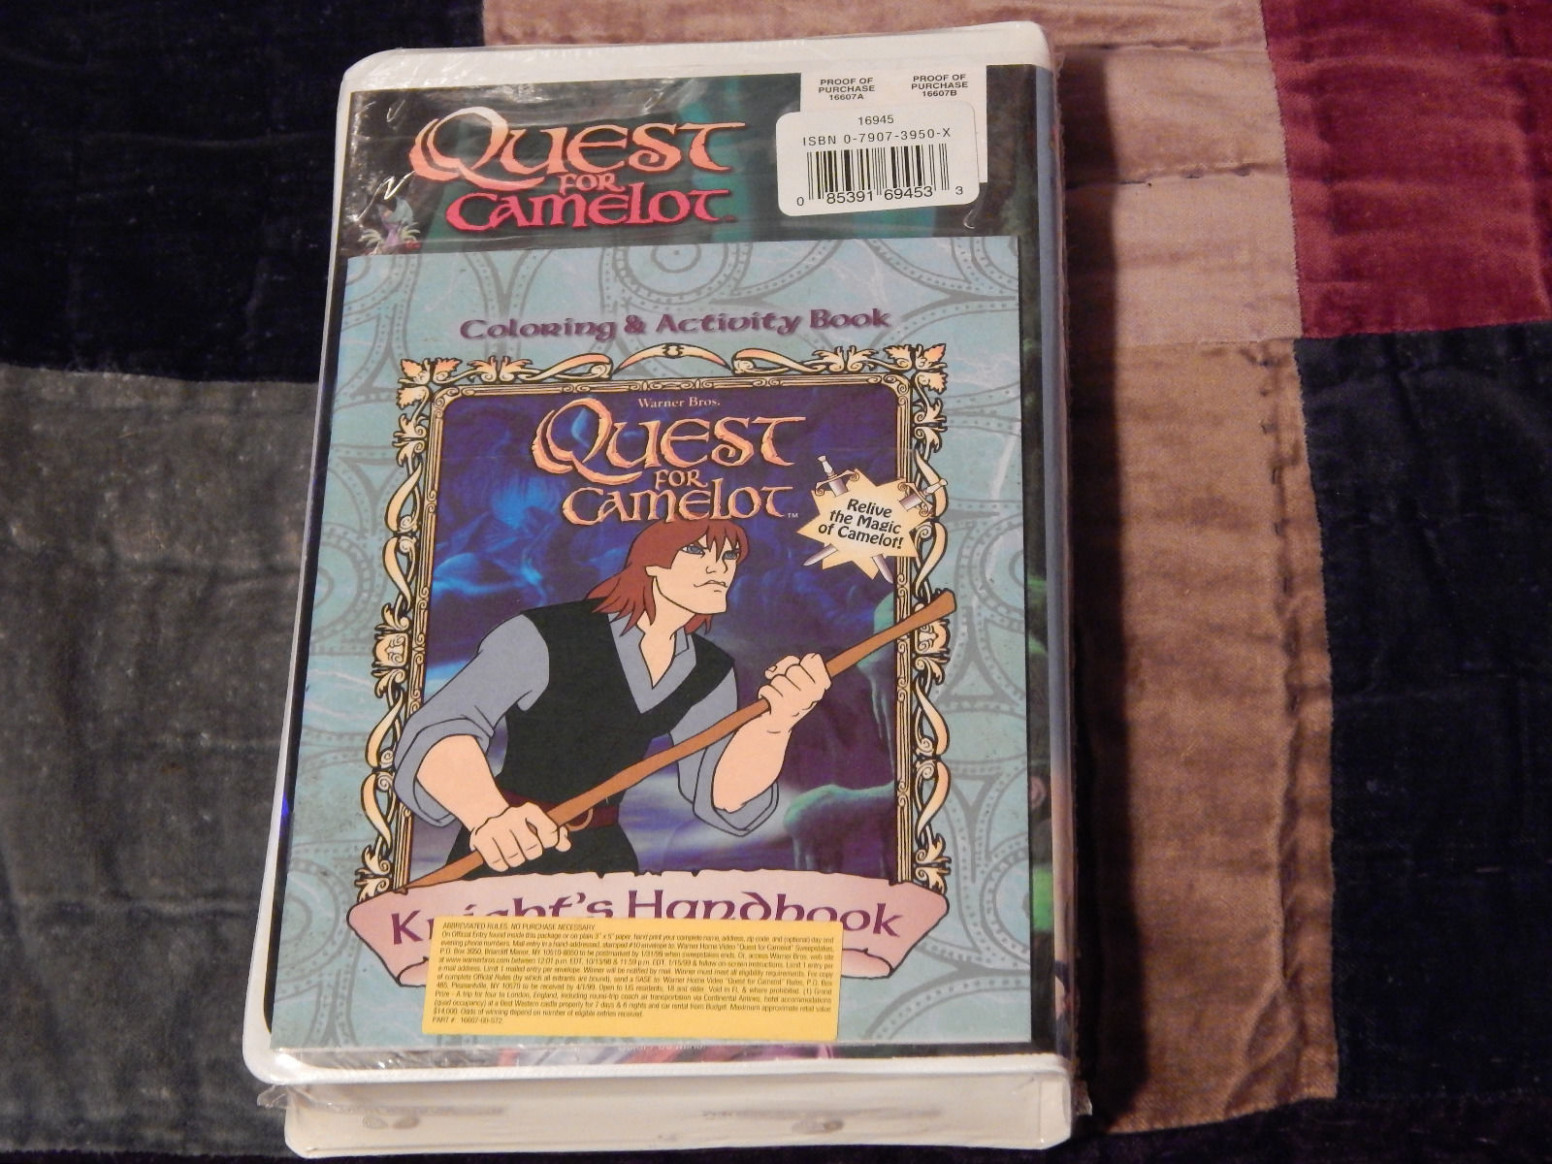 Quest For Camelot (VHS, 19, With Color Activity Book) | eBay – quest for camelot coloring book